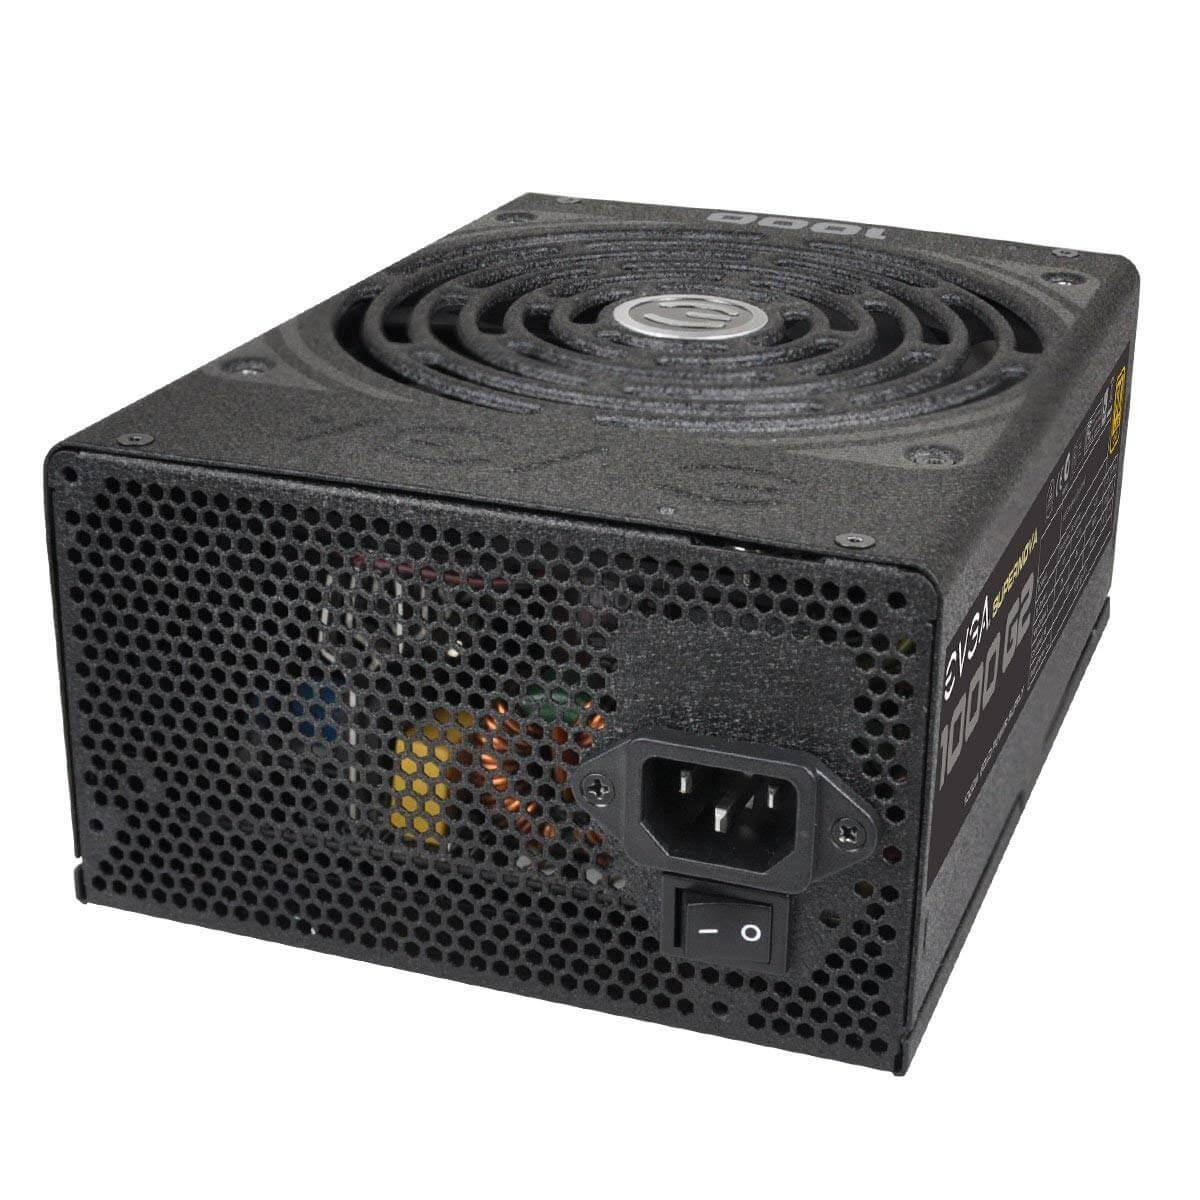 EVGA SuperNOVA 1000W G2 Modular ultra quiet ATX Power Supply, SLI & X-fire ready_NEW